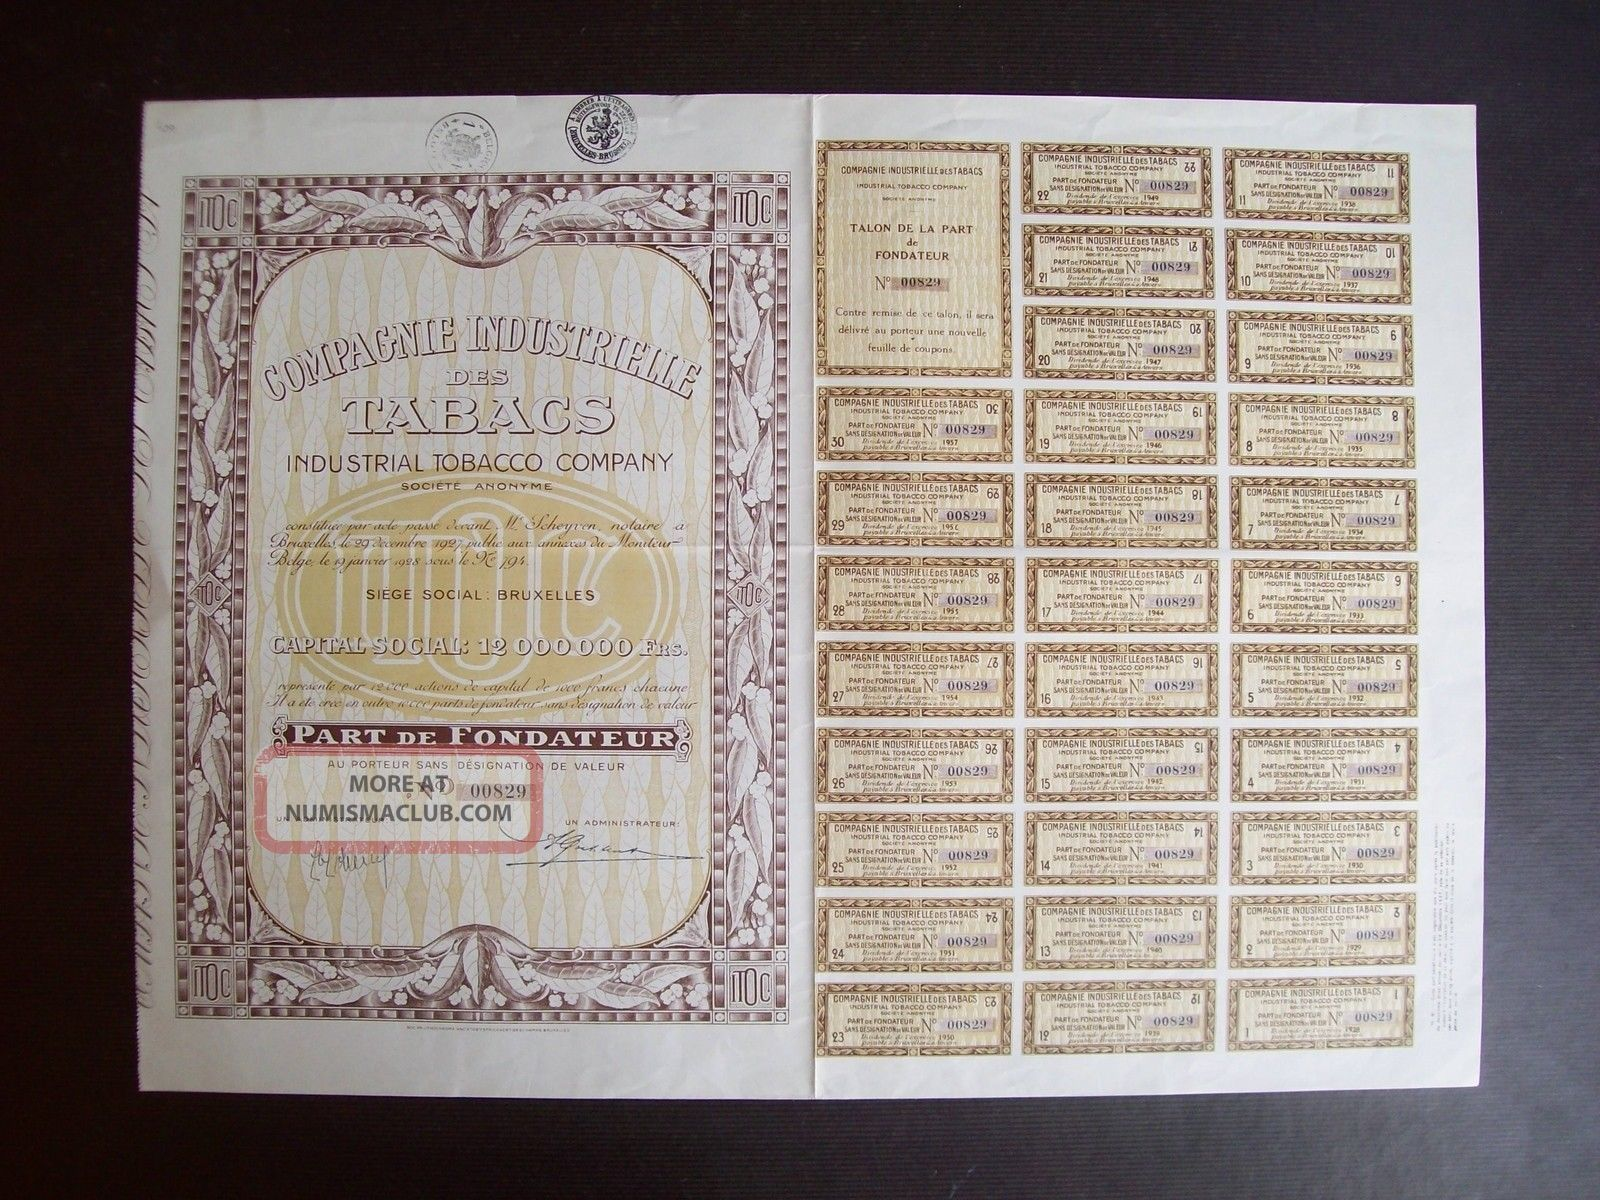 Belgium 1928 Bond - Industrial Tobacco Compagnie Bruxelles - With Coupons.  A9771 World photo